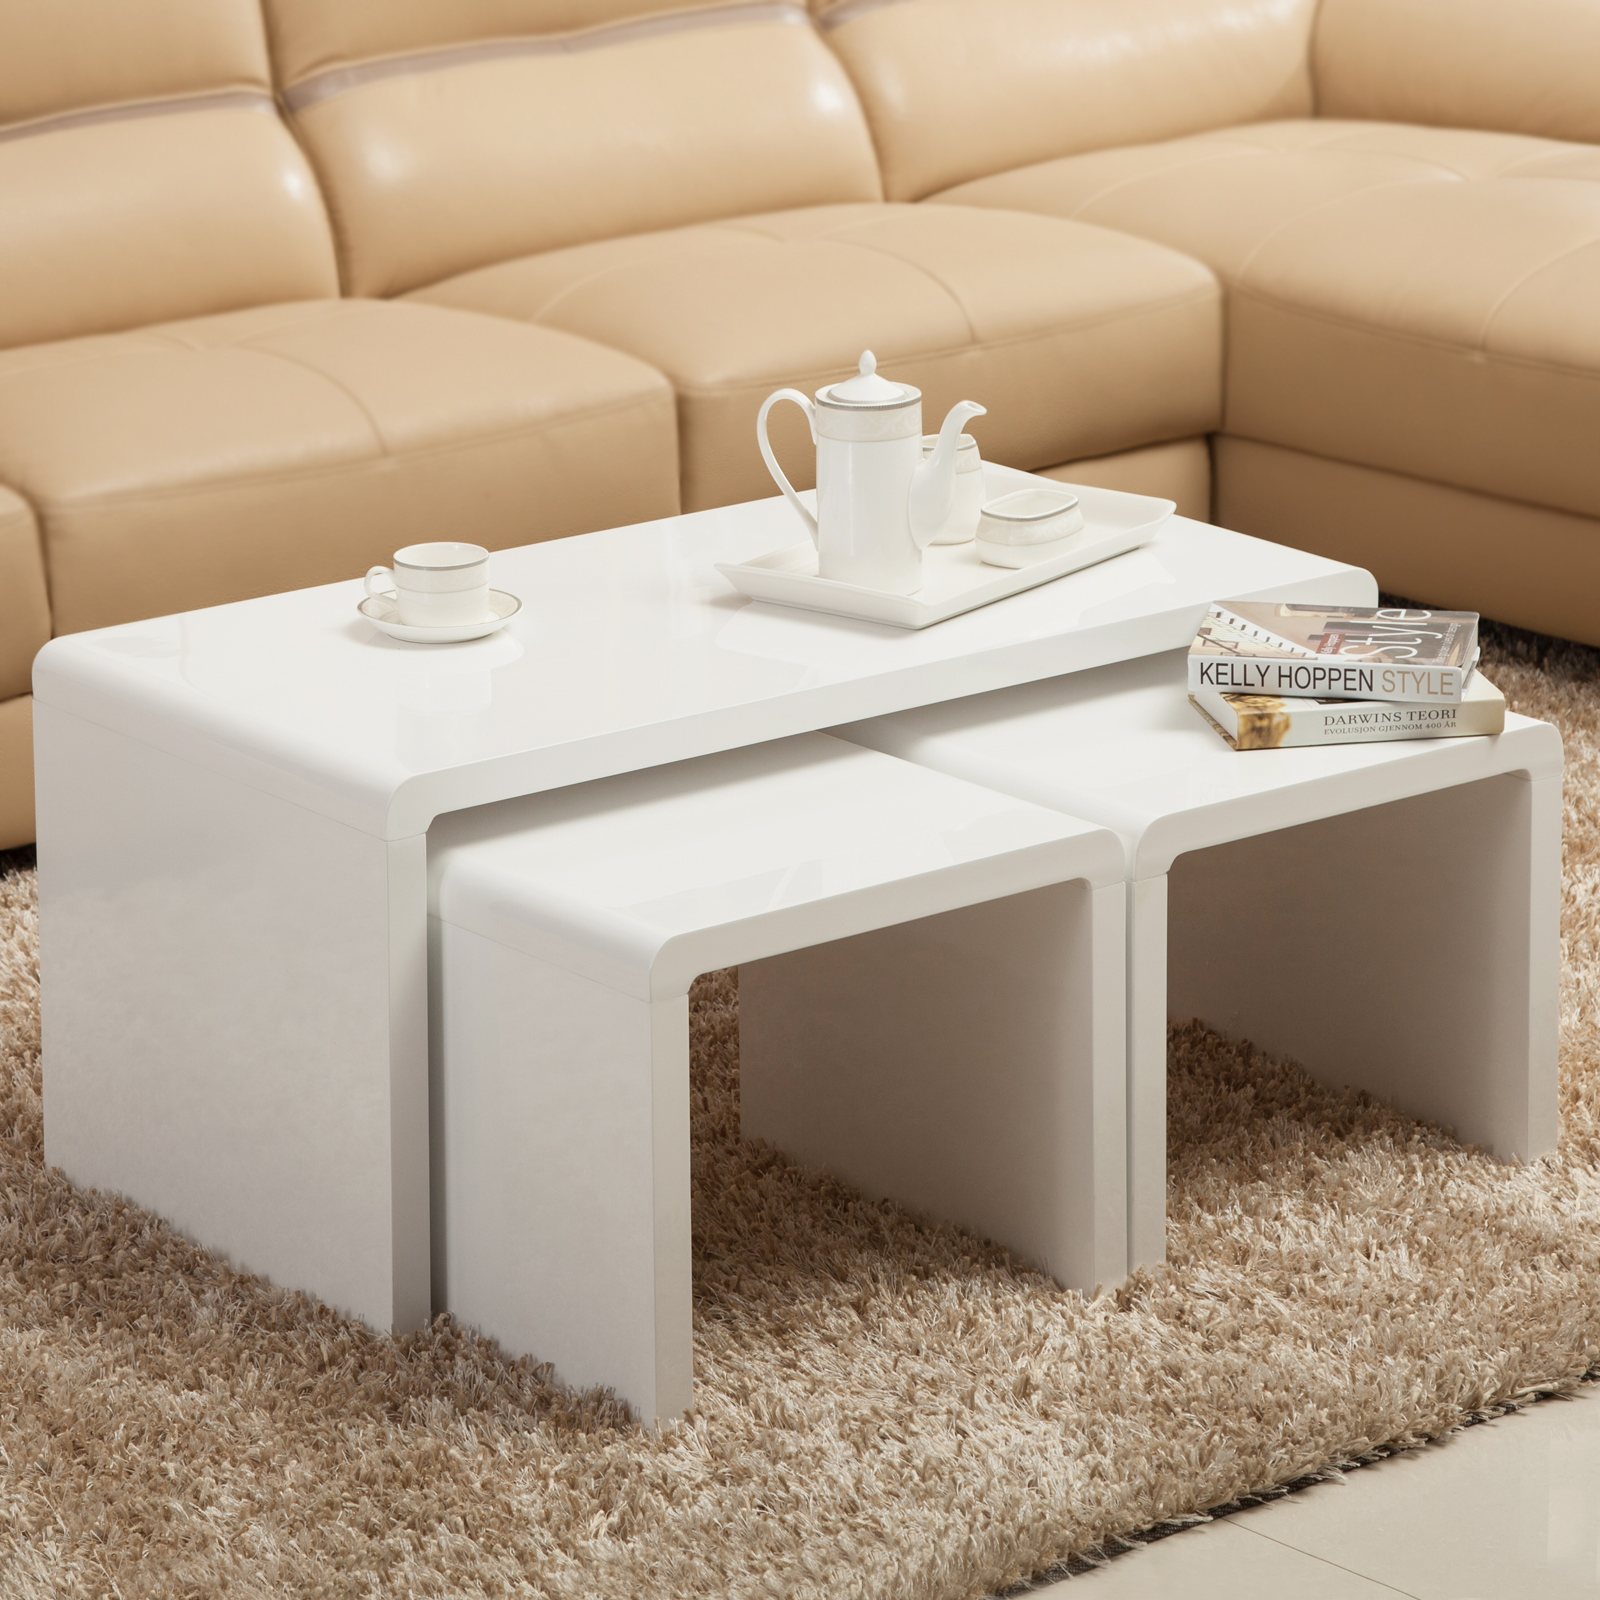 High gloss white coffee table side end table set of 2 living room bedroom ebay for White end tables for living room